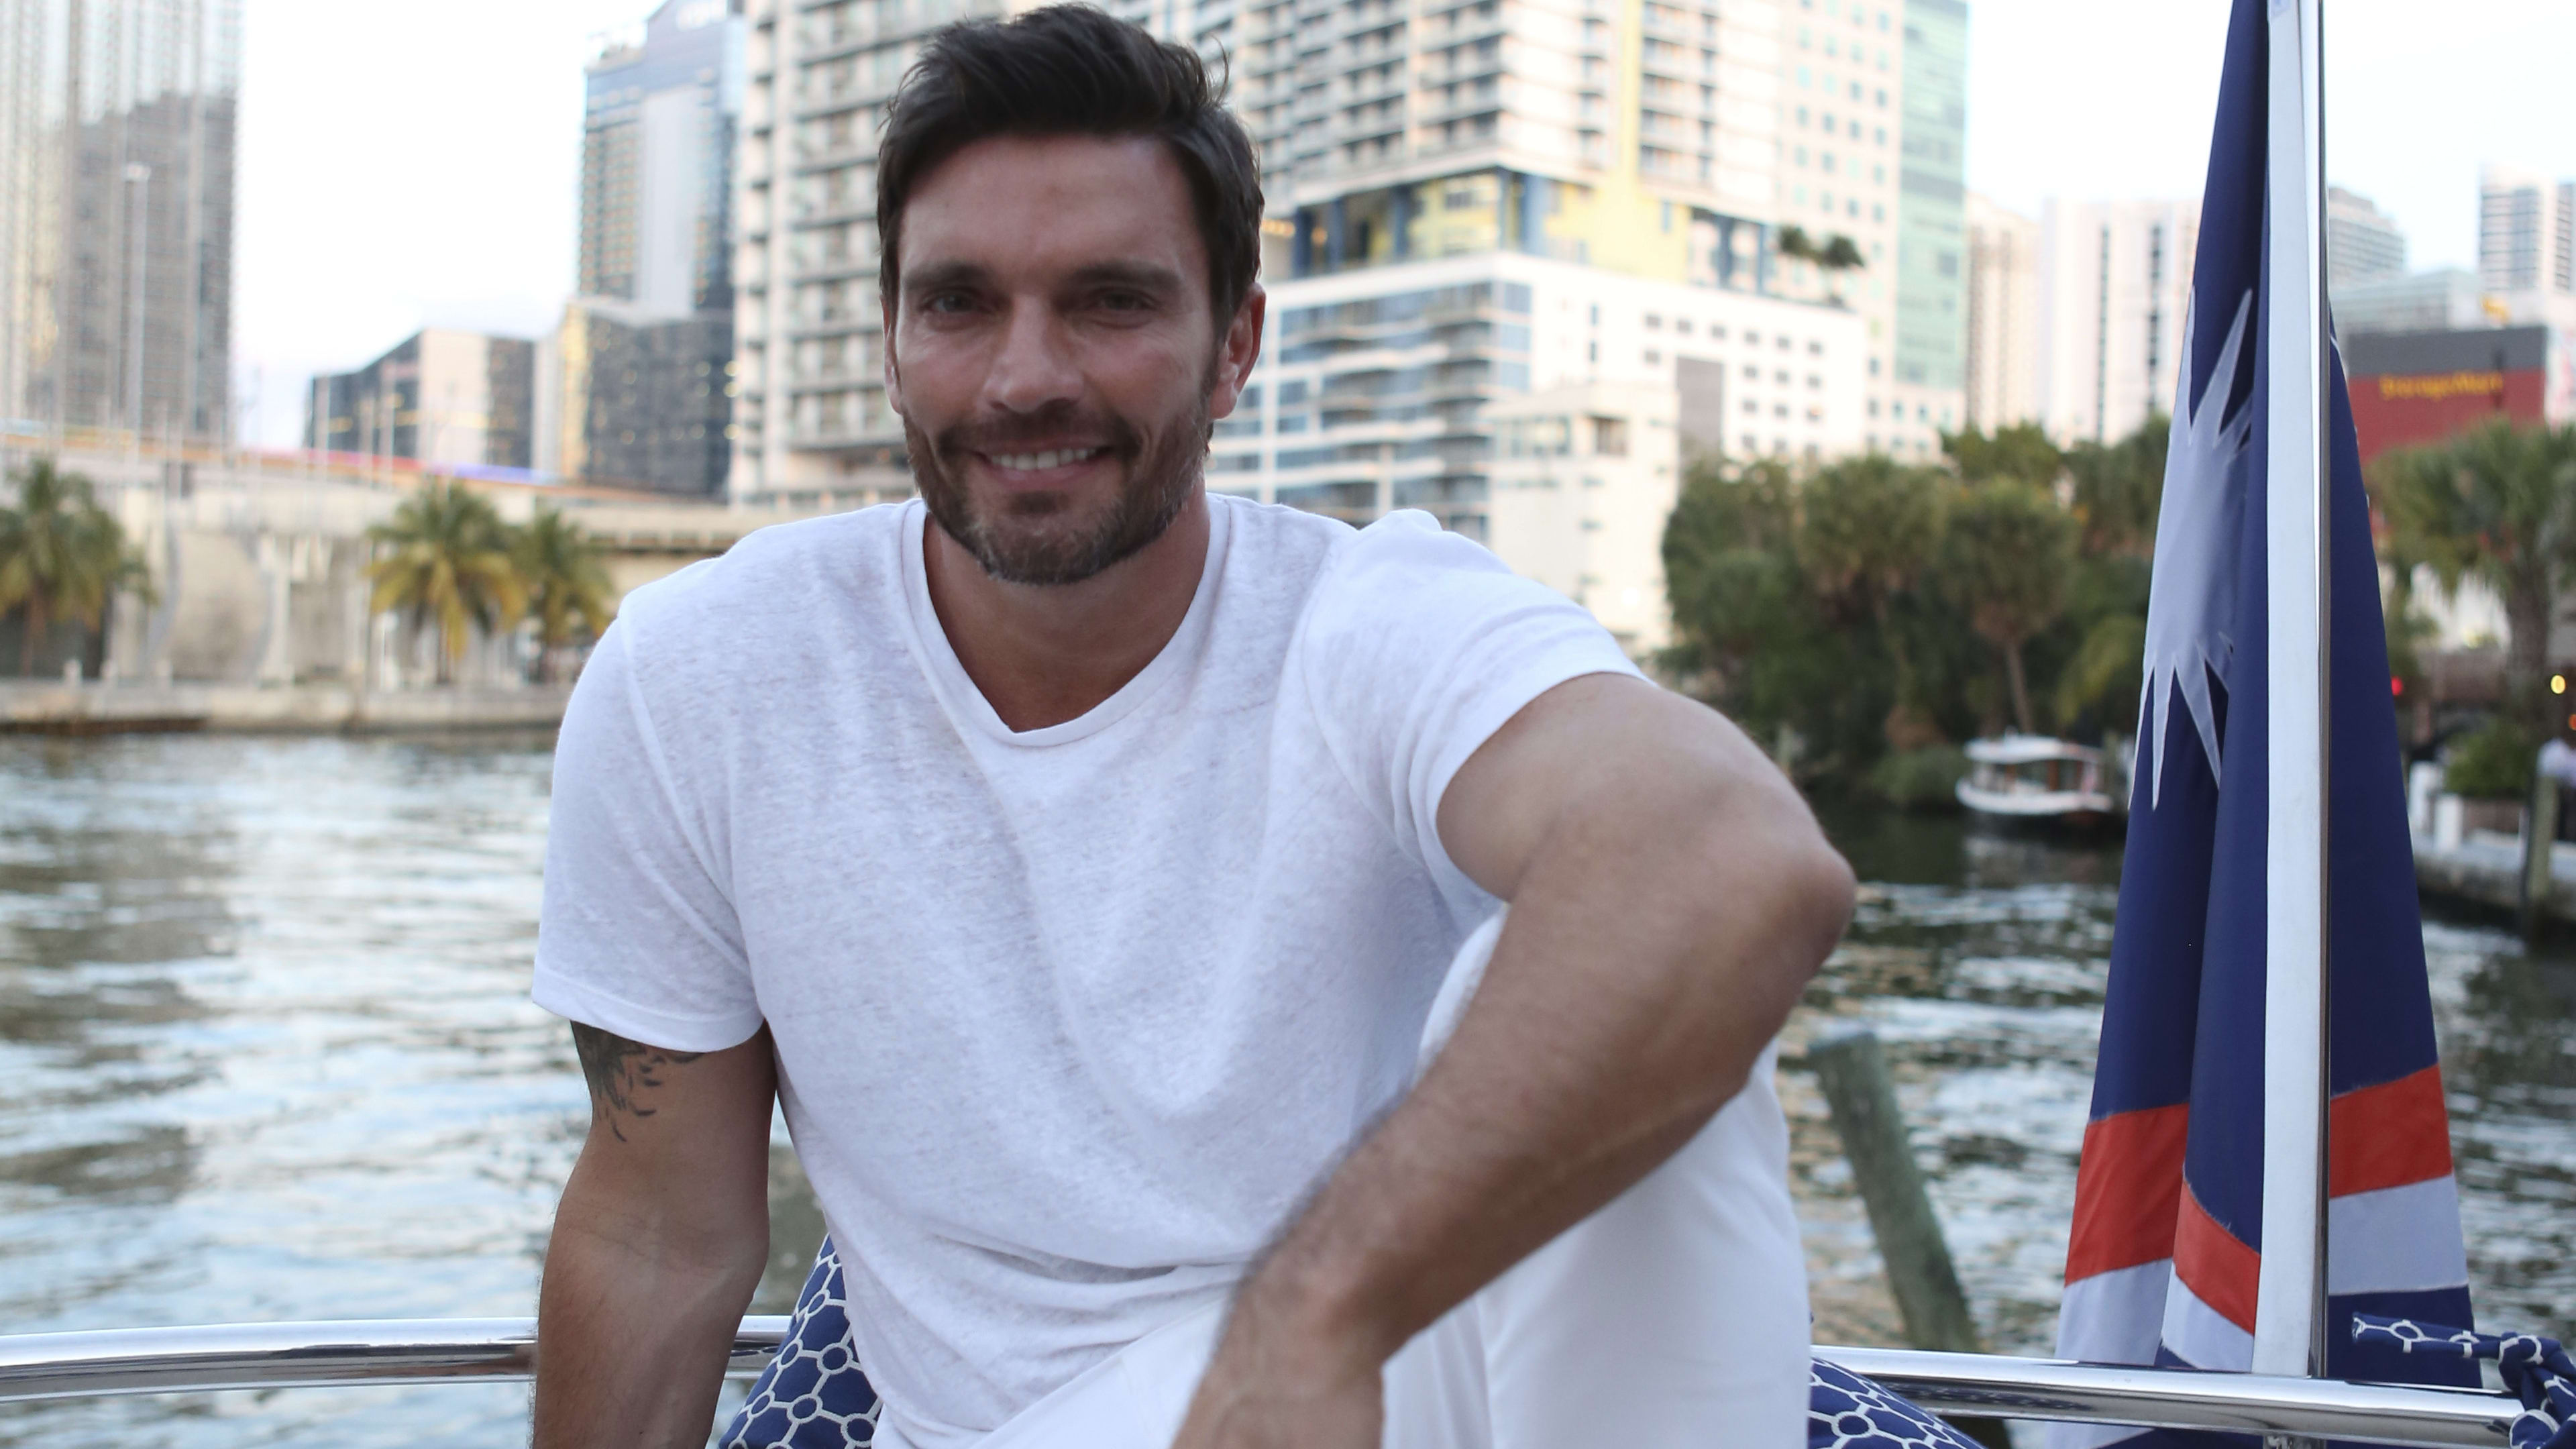 MIAMI, US - APRIL 20: Julian Gil poses at River Yatch Club during the US launch of Carson Life on April 20, 2017 in Miami, Us. (Photo by Marc Serota/LatinContent/Getty Images)